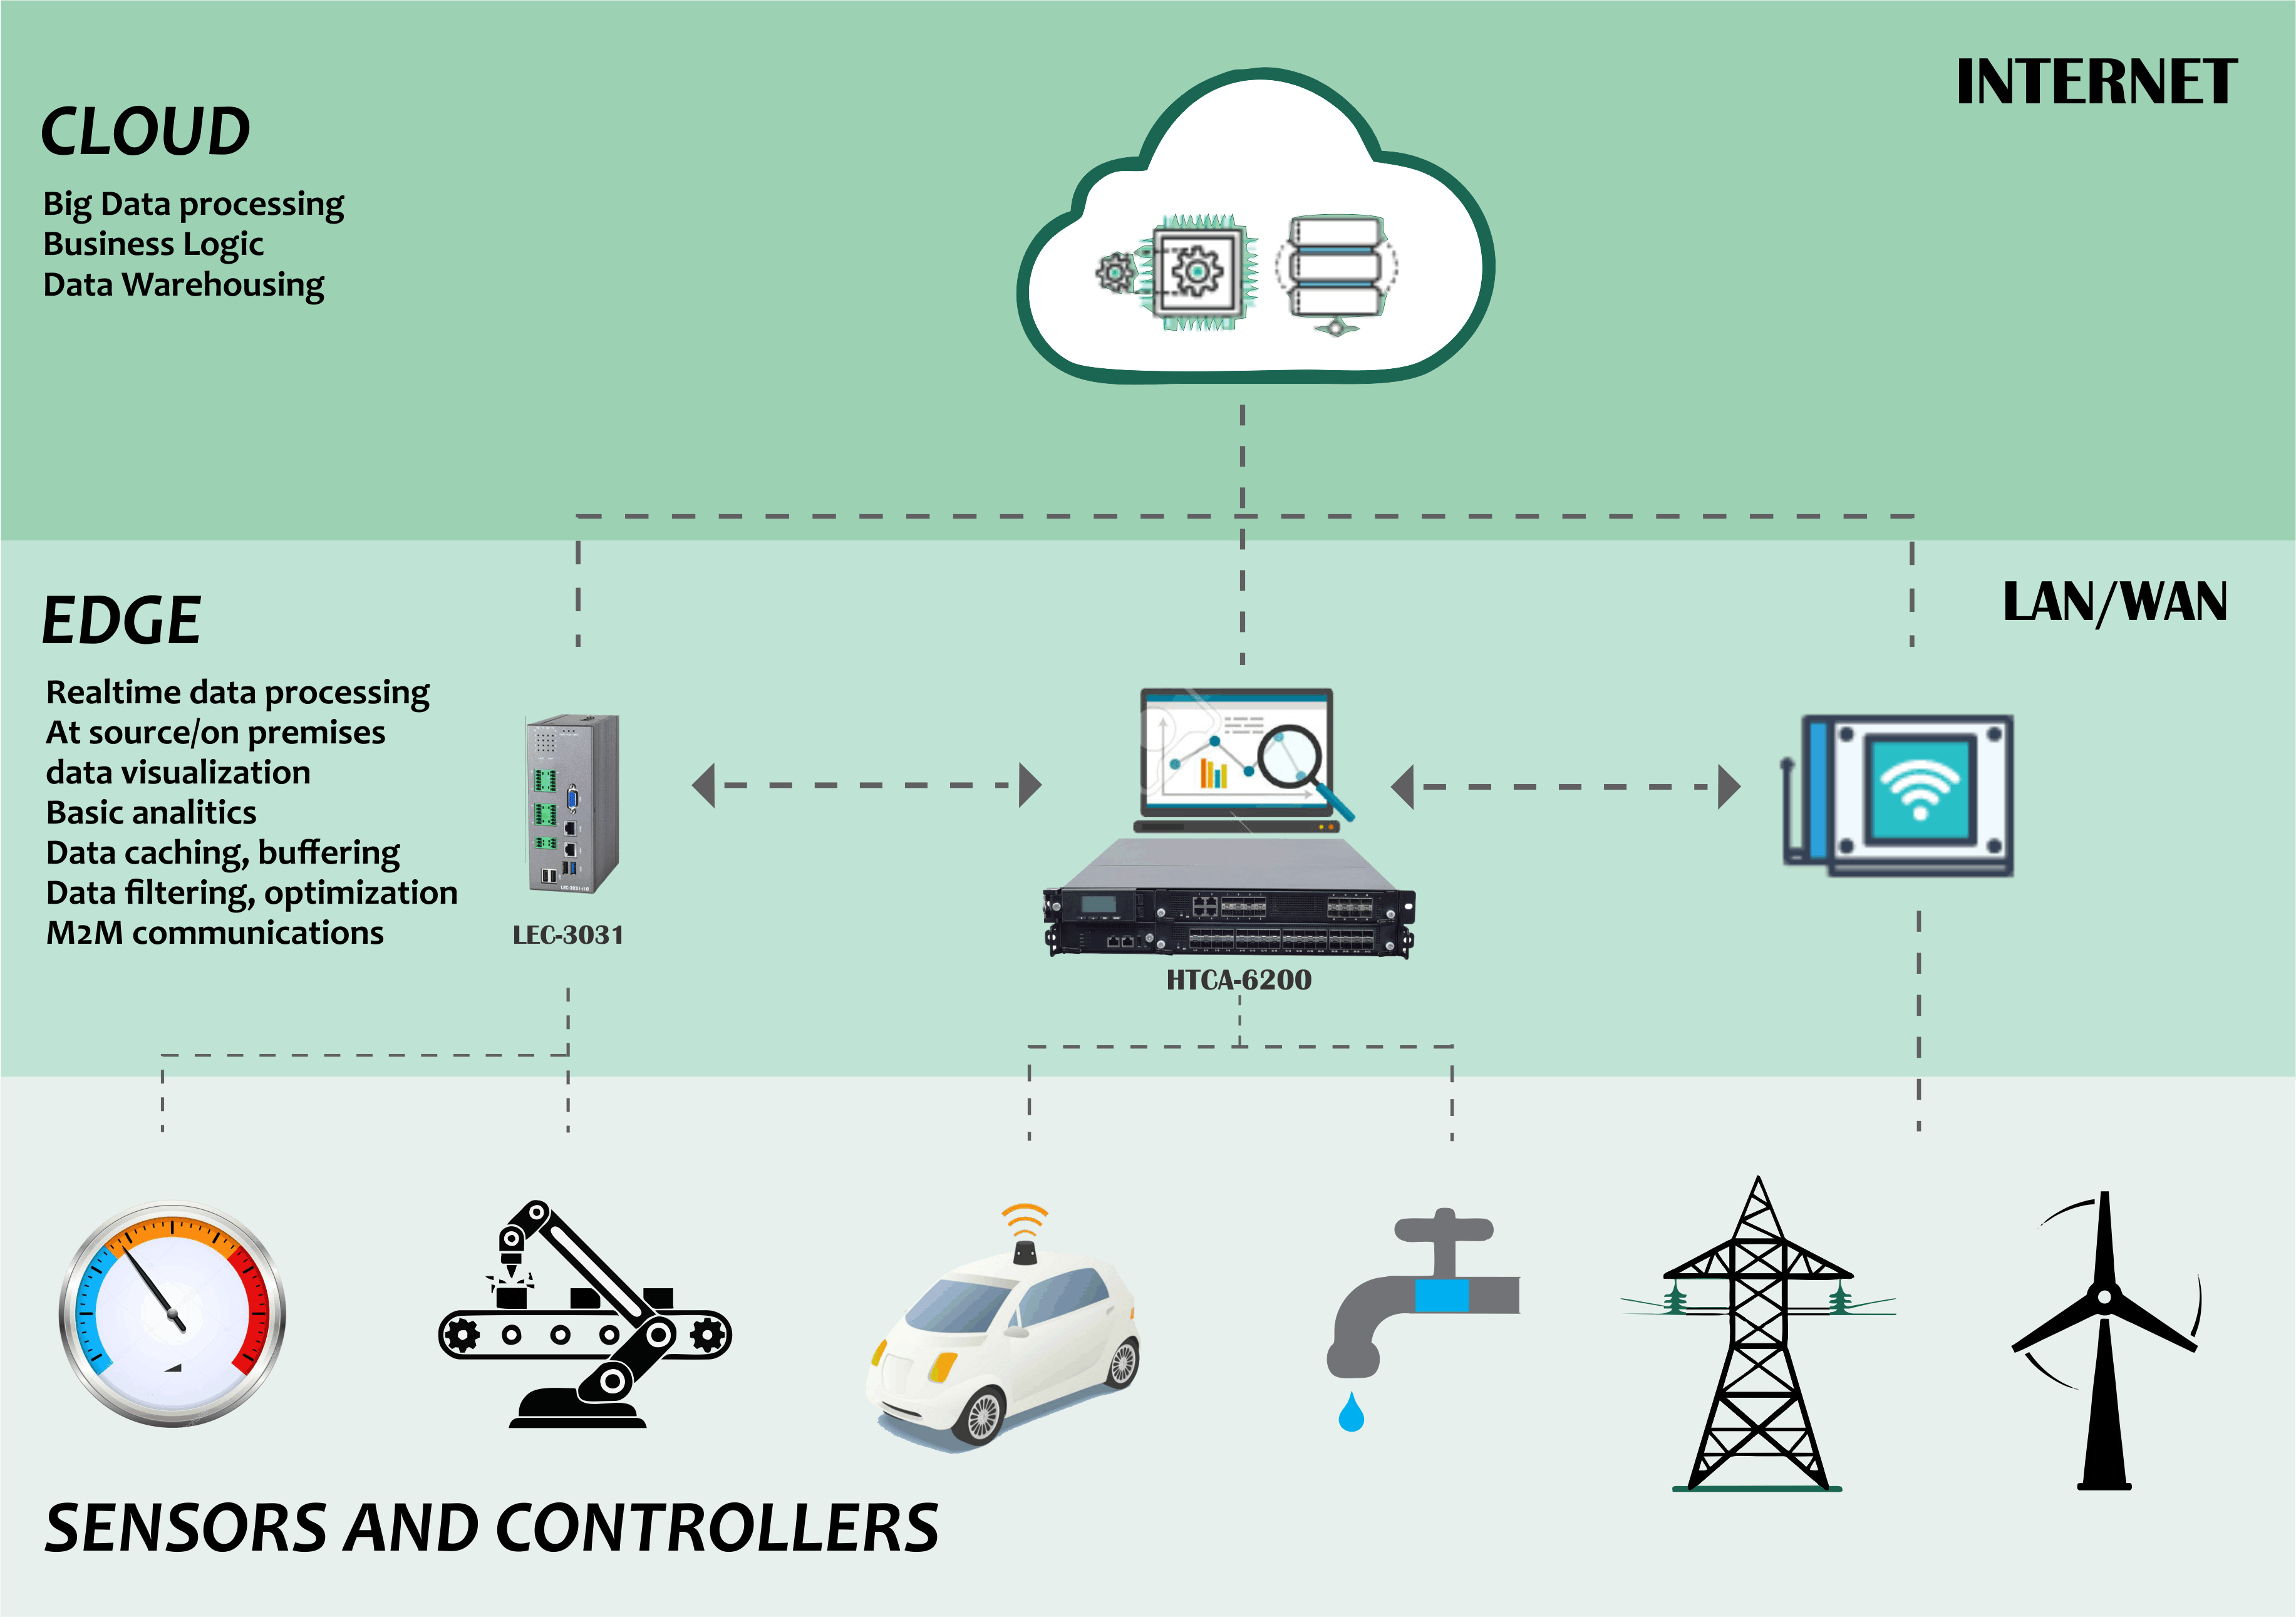 Diagram depicts the connection with the cloud and data centers with edge network computing.